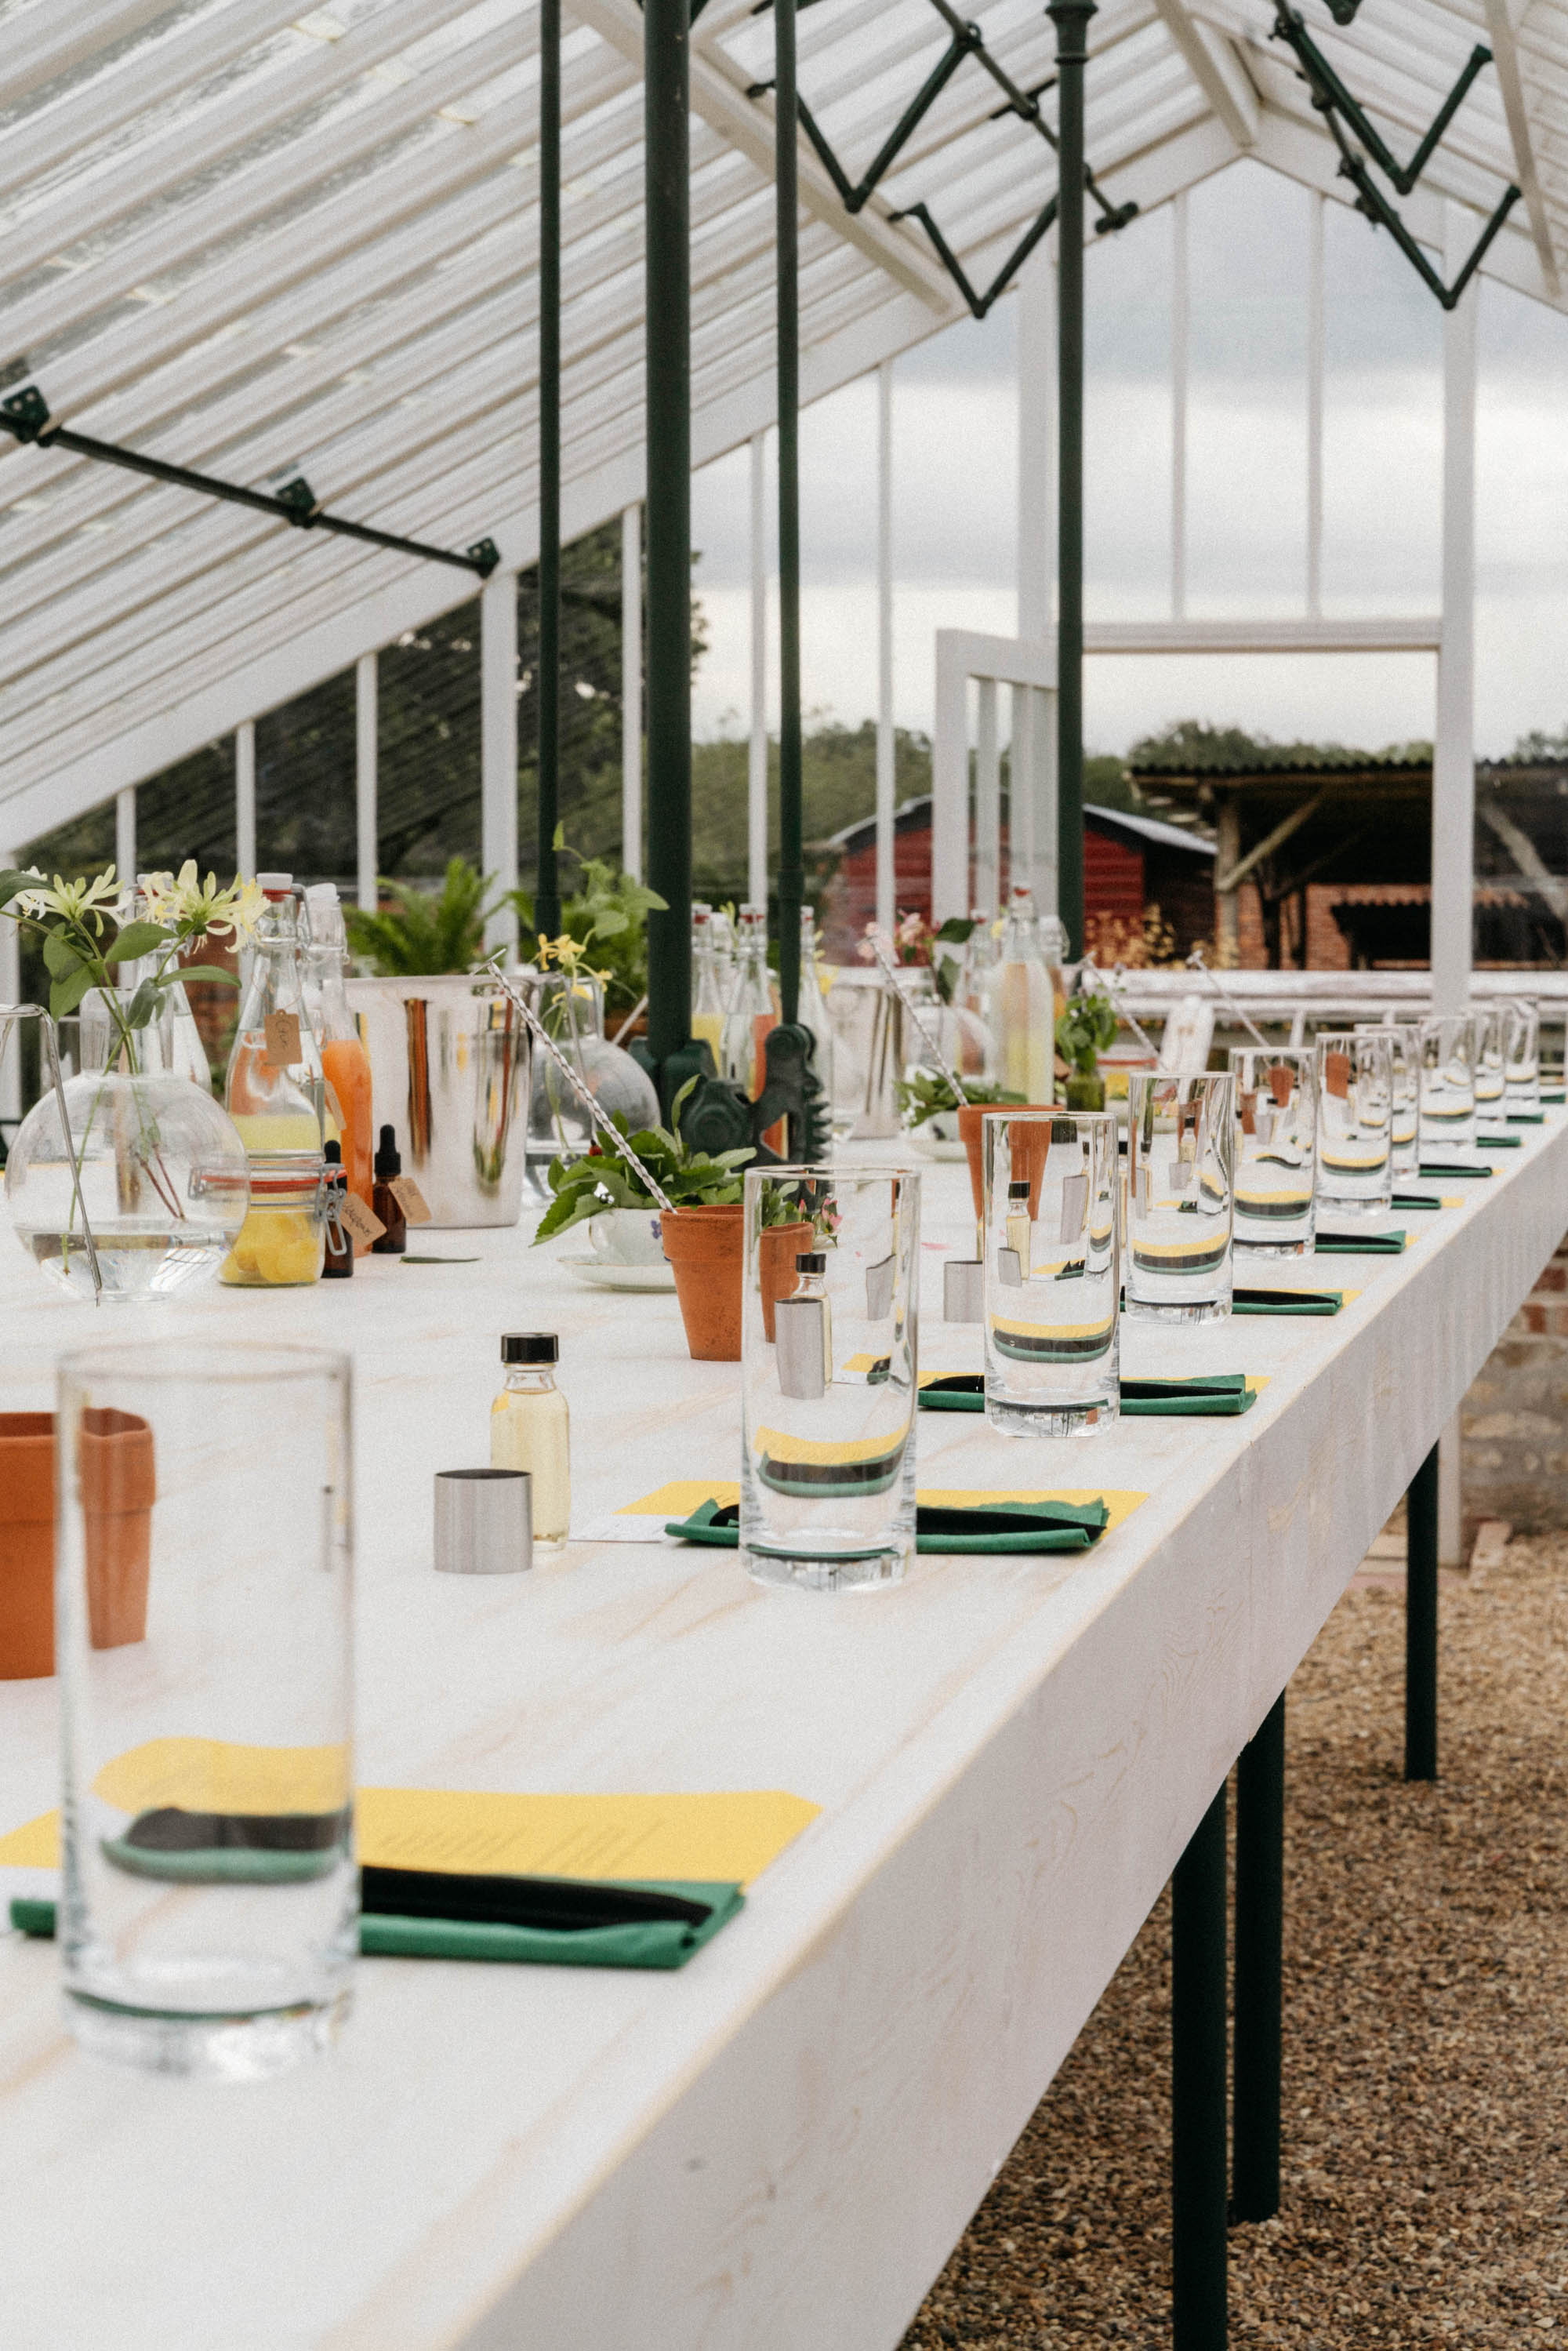 Honey-infused mixology class with  Anya Lily Montague